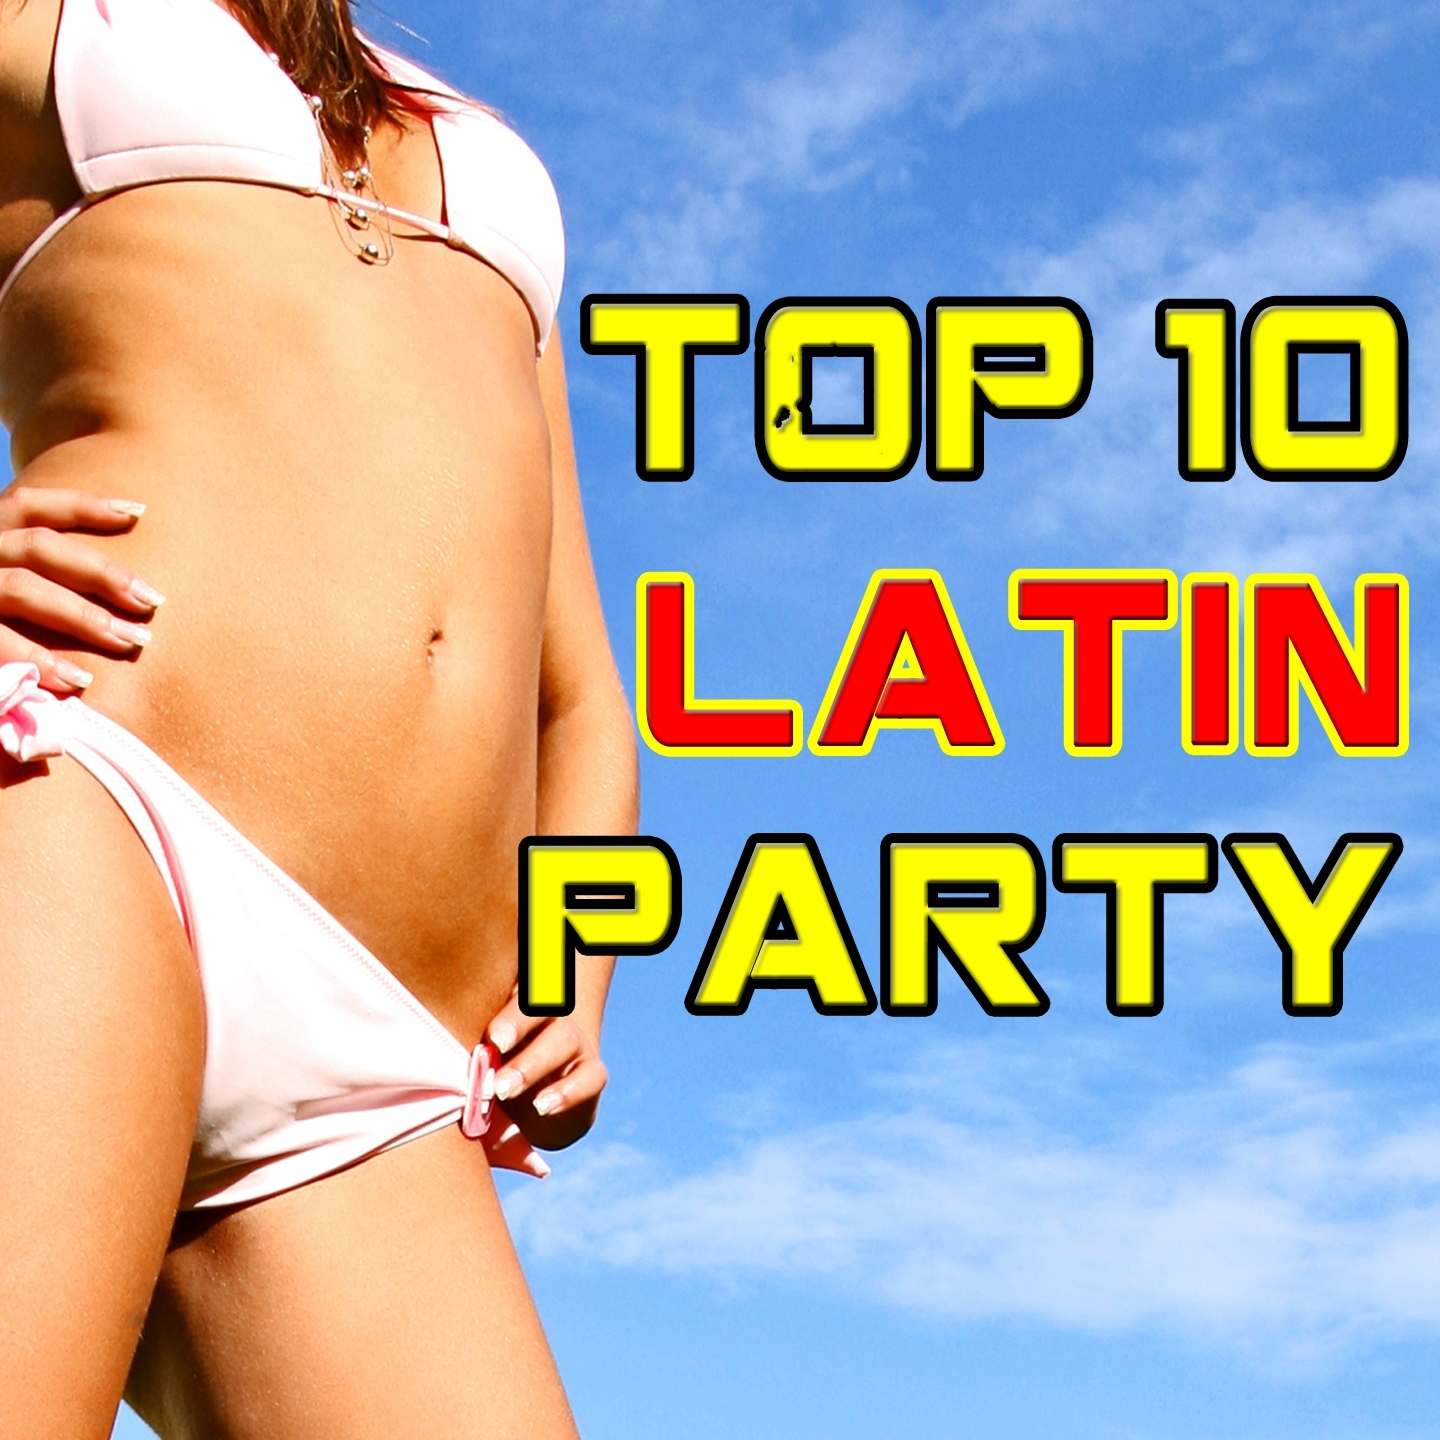 Top 10 Latin Party